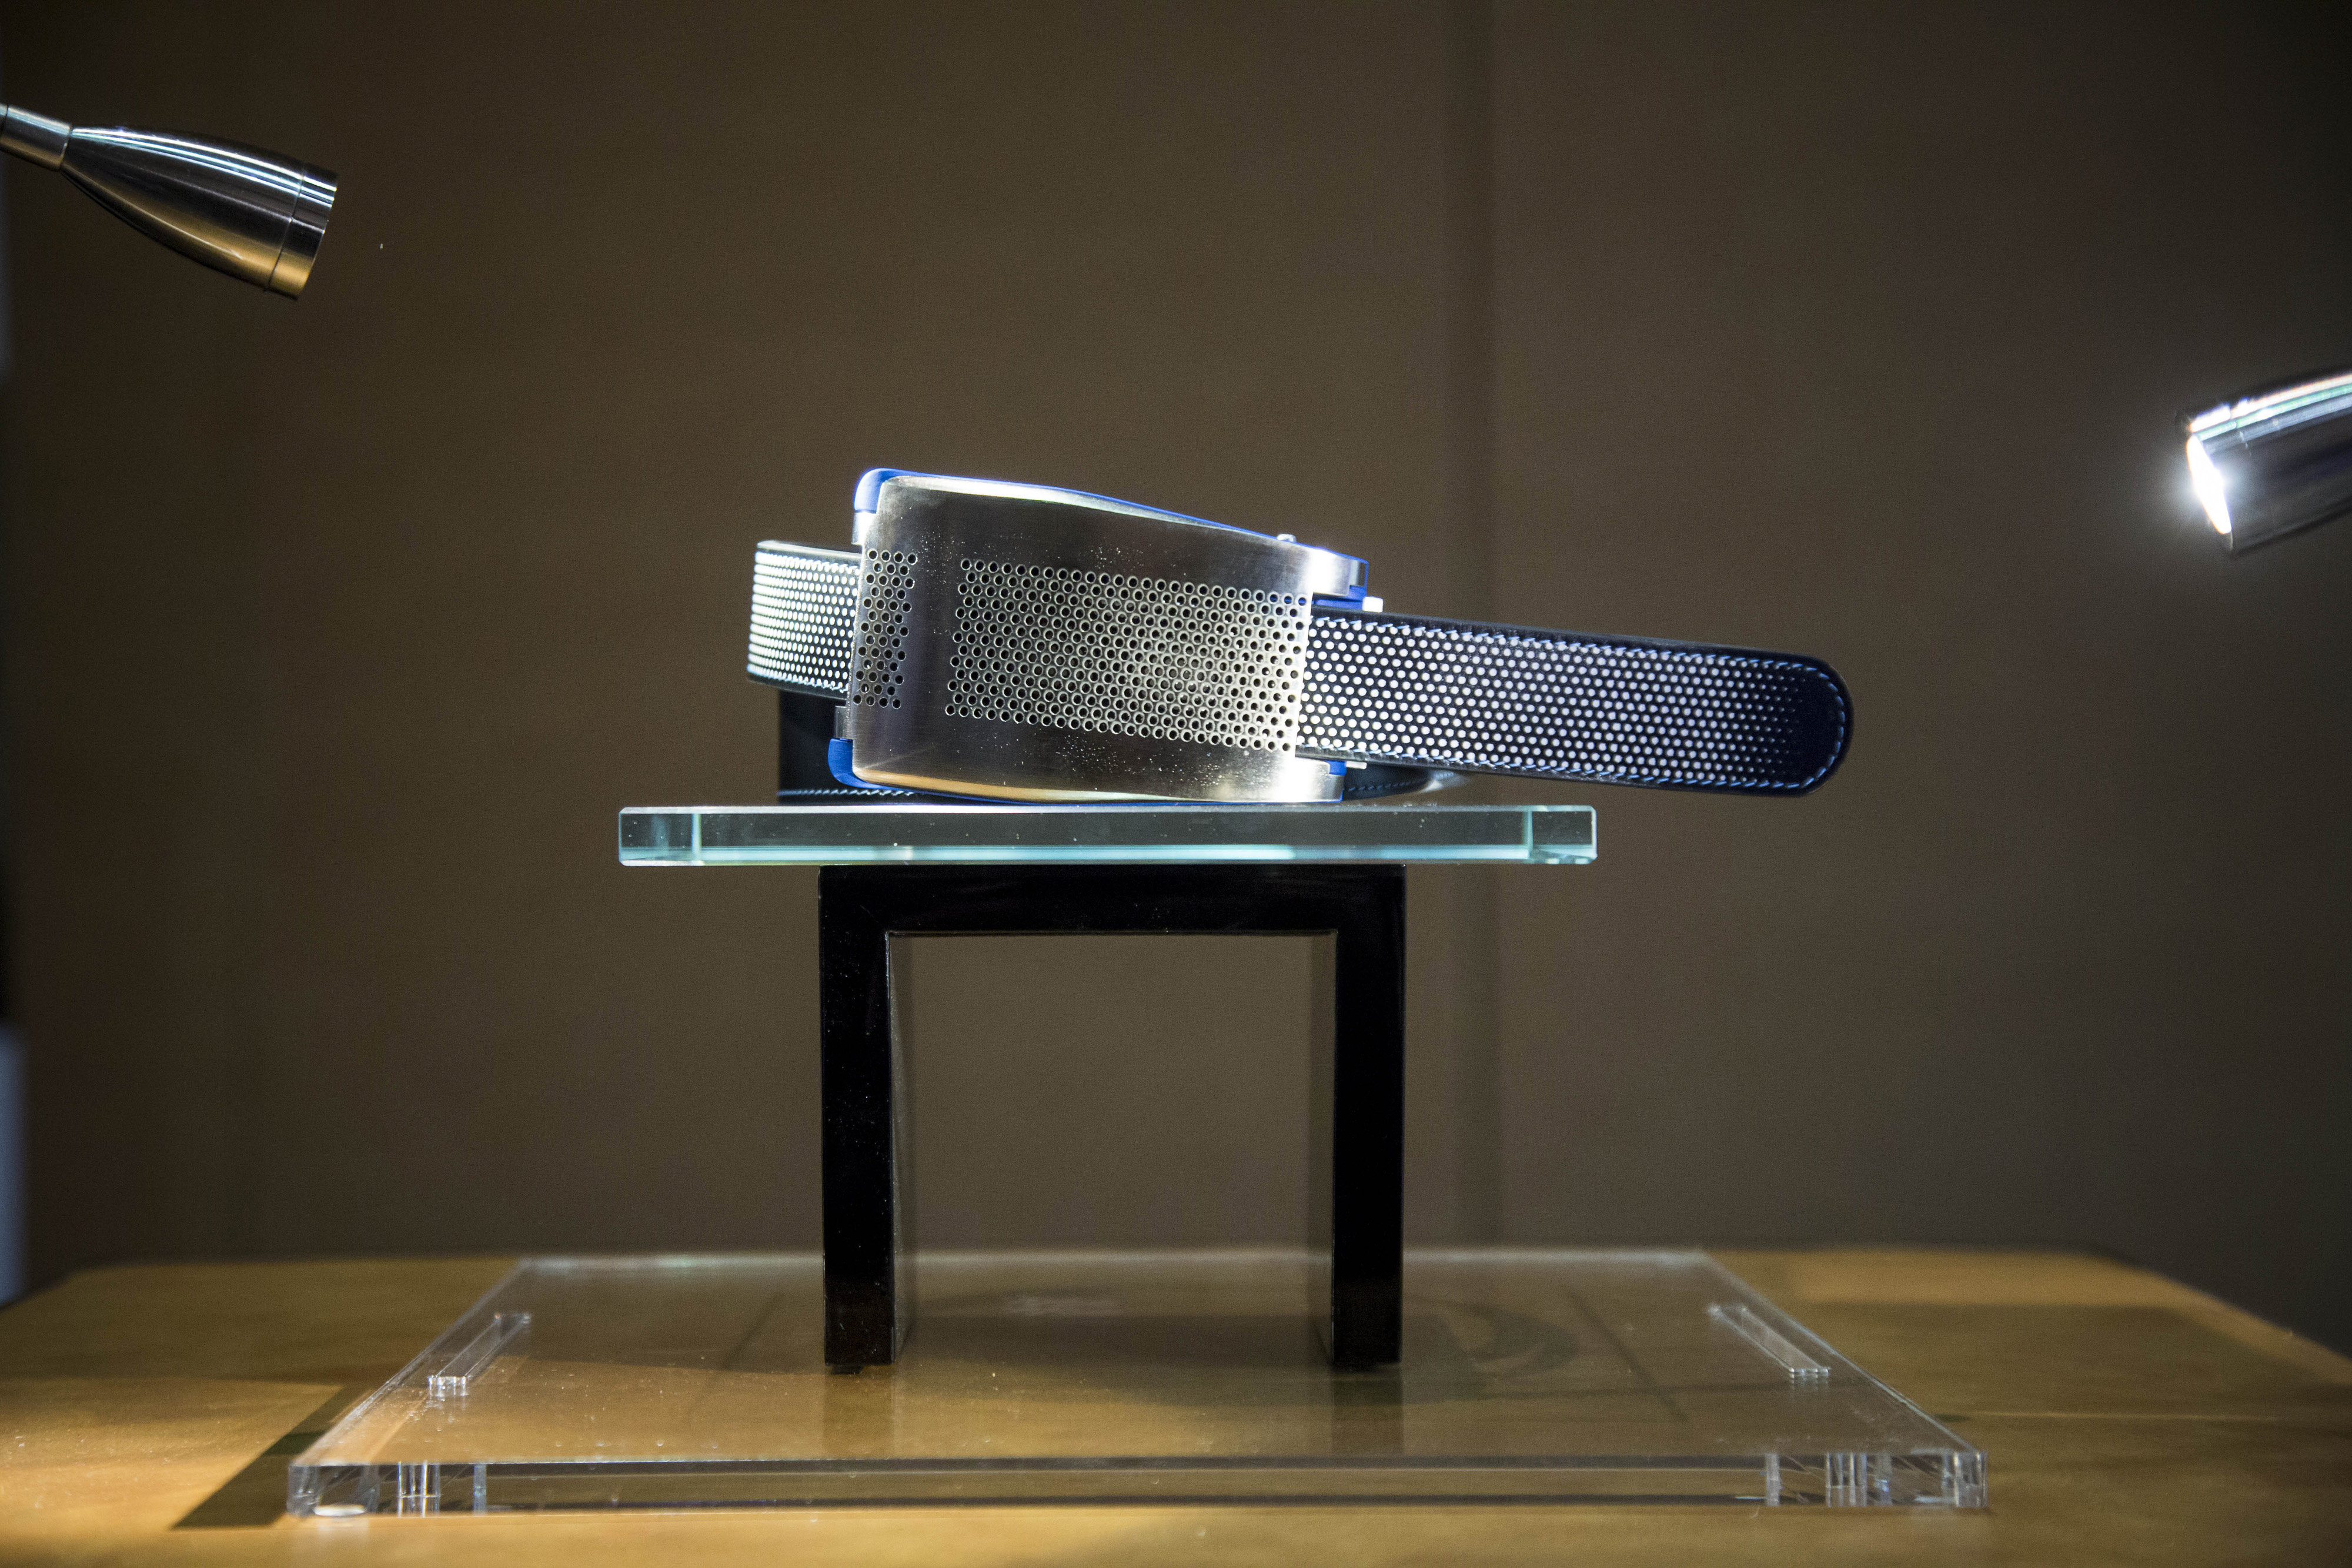 The Emiota smart belt is displayed at the CES Unveiled press event ahead of the 2015 Consumer Electronics Show in Las Vegas on January 4, 2015.